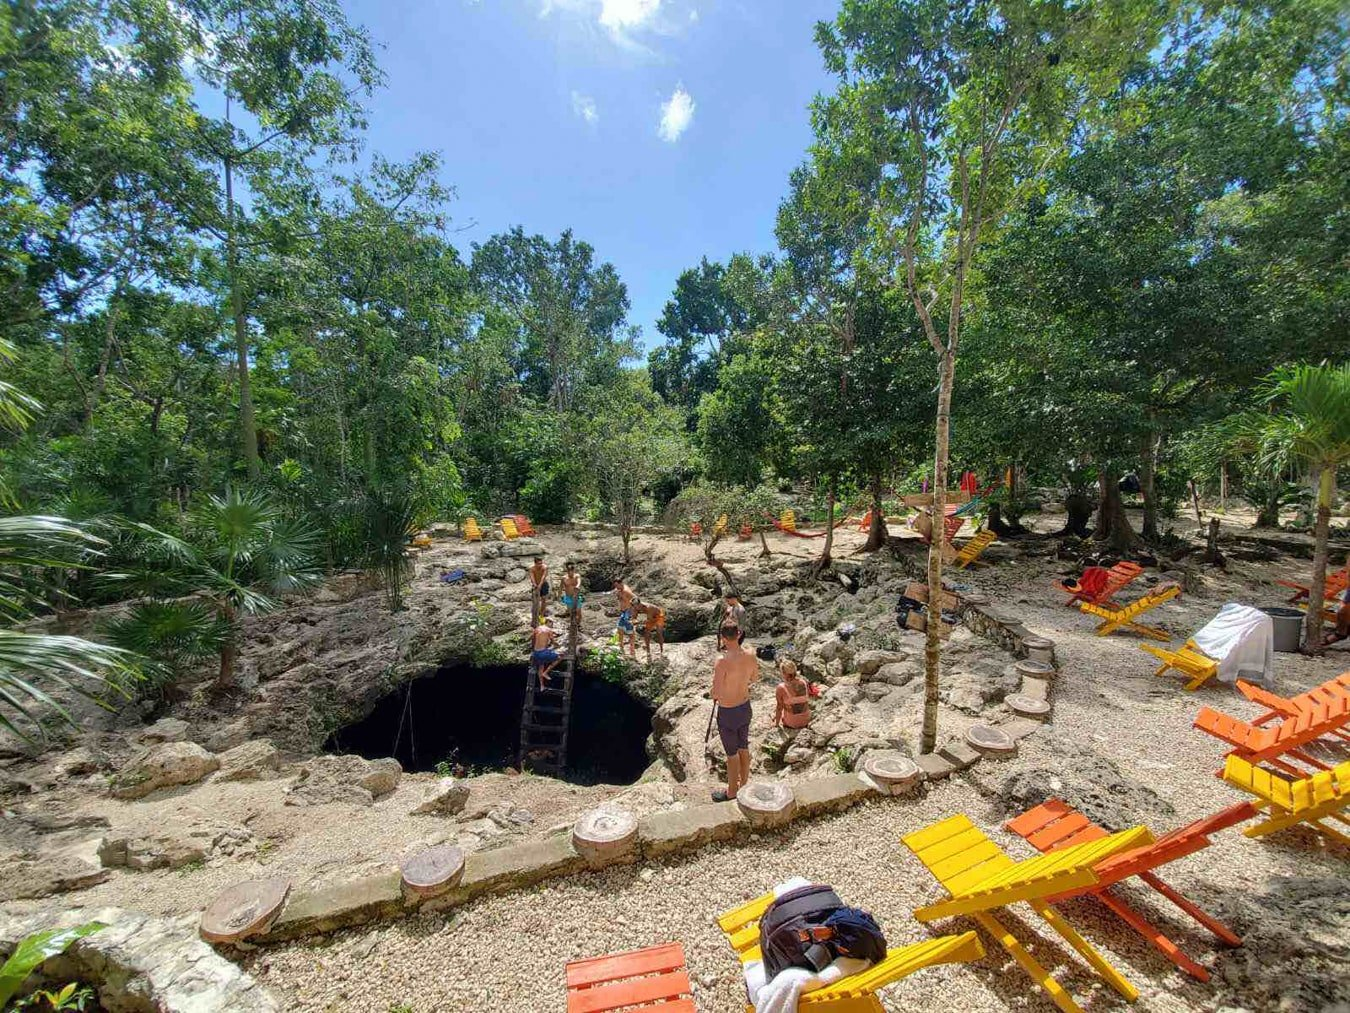 cenote calavera main entrance with lounge chairs and people